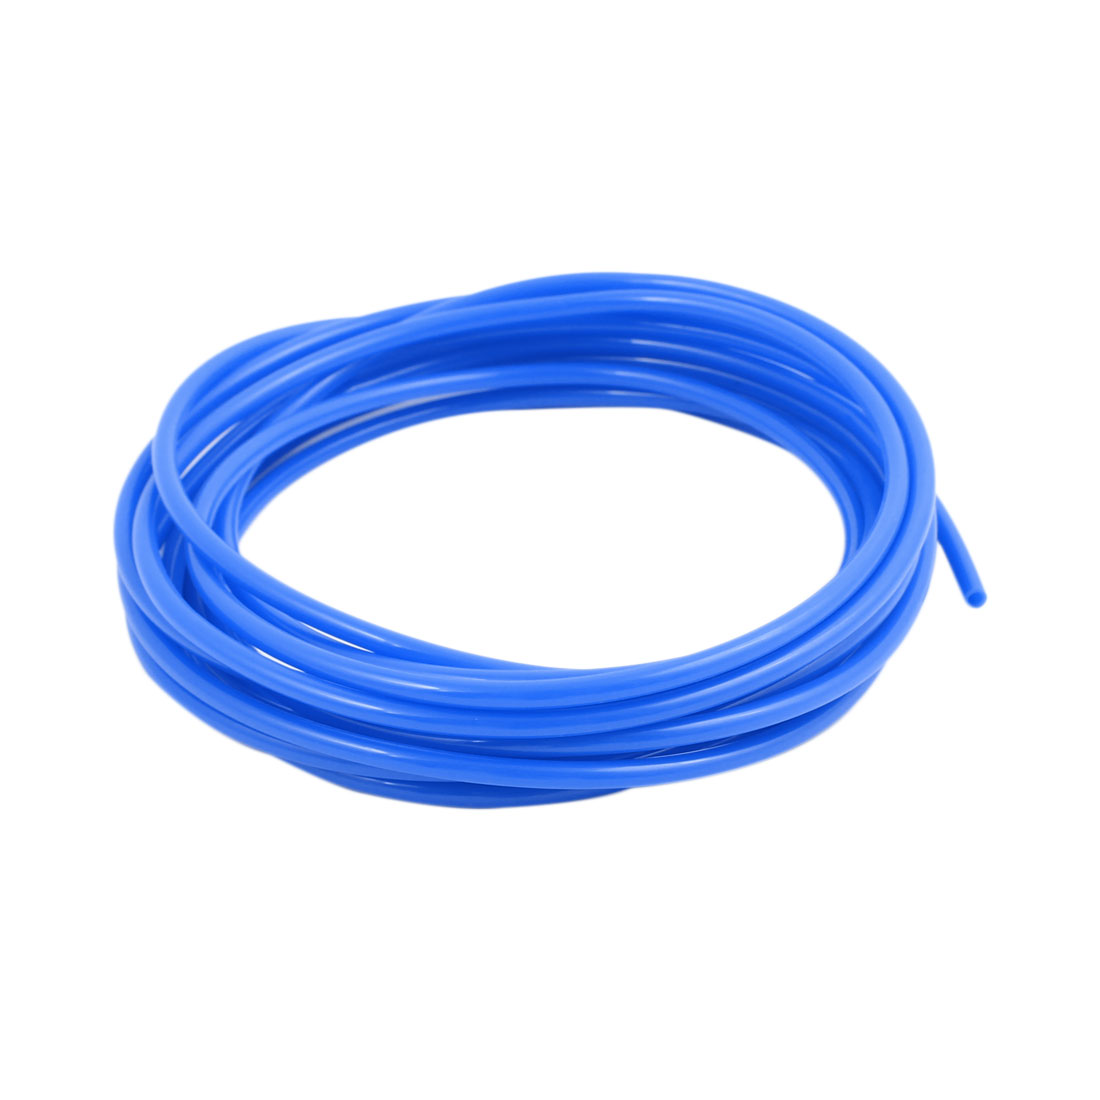 2.5mm x 4mm Pneumatic Air Compressor Tubing PU Hose Tube Pipe 4.2 meter Blue